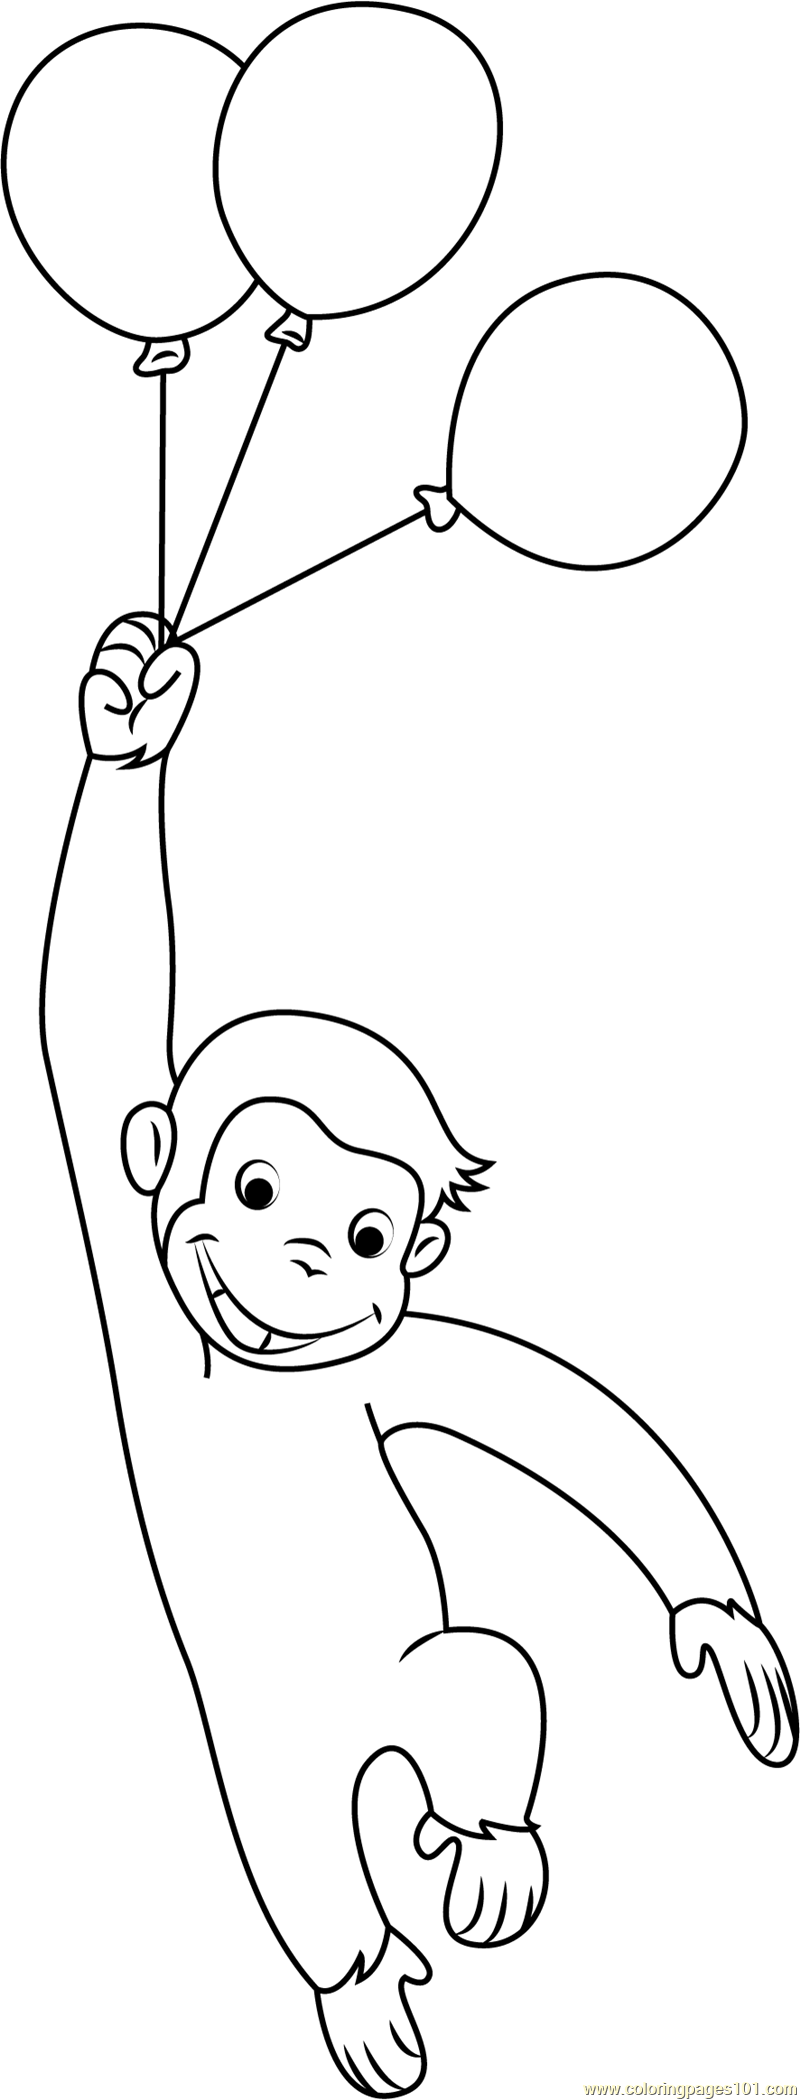 Curious George With Balloons Coloring Page